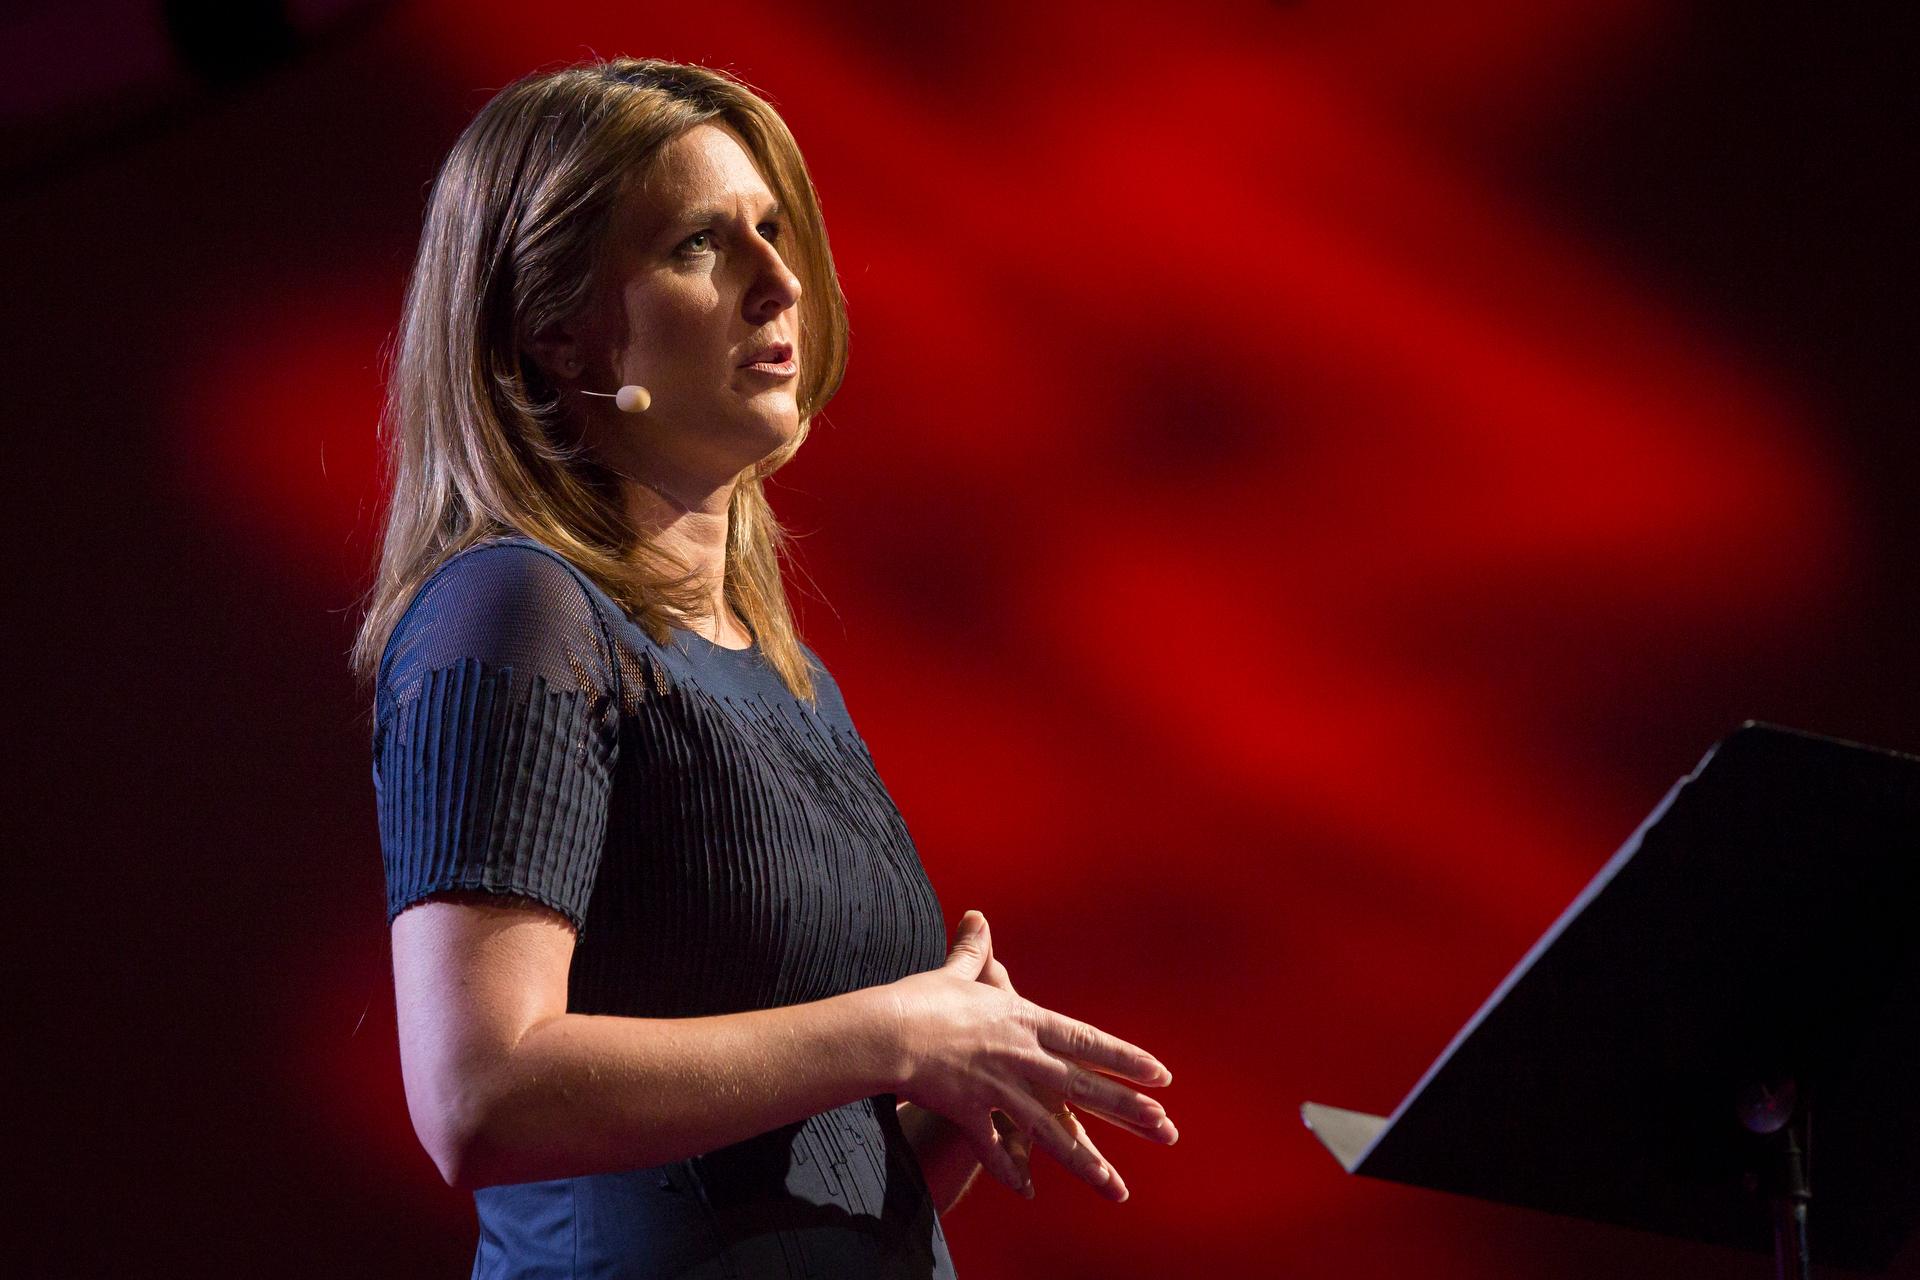 Aspen Baker speaks at TEDWomen2015 - Momentum, Session 5 May 28, 2015, Monterey Conference Center, Monterey, California, USA. Photo: Marla Aufmuth/TED